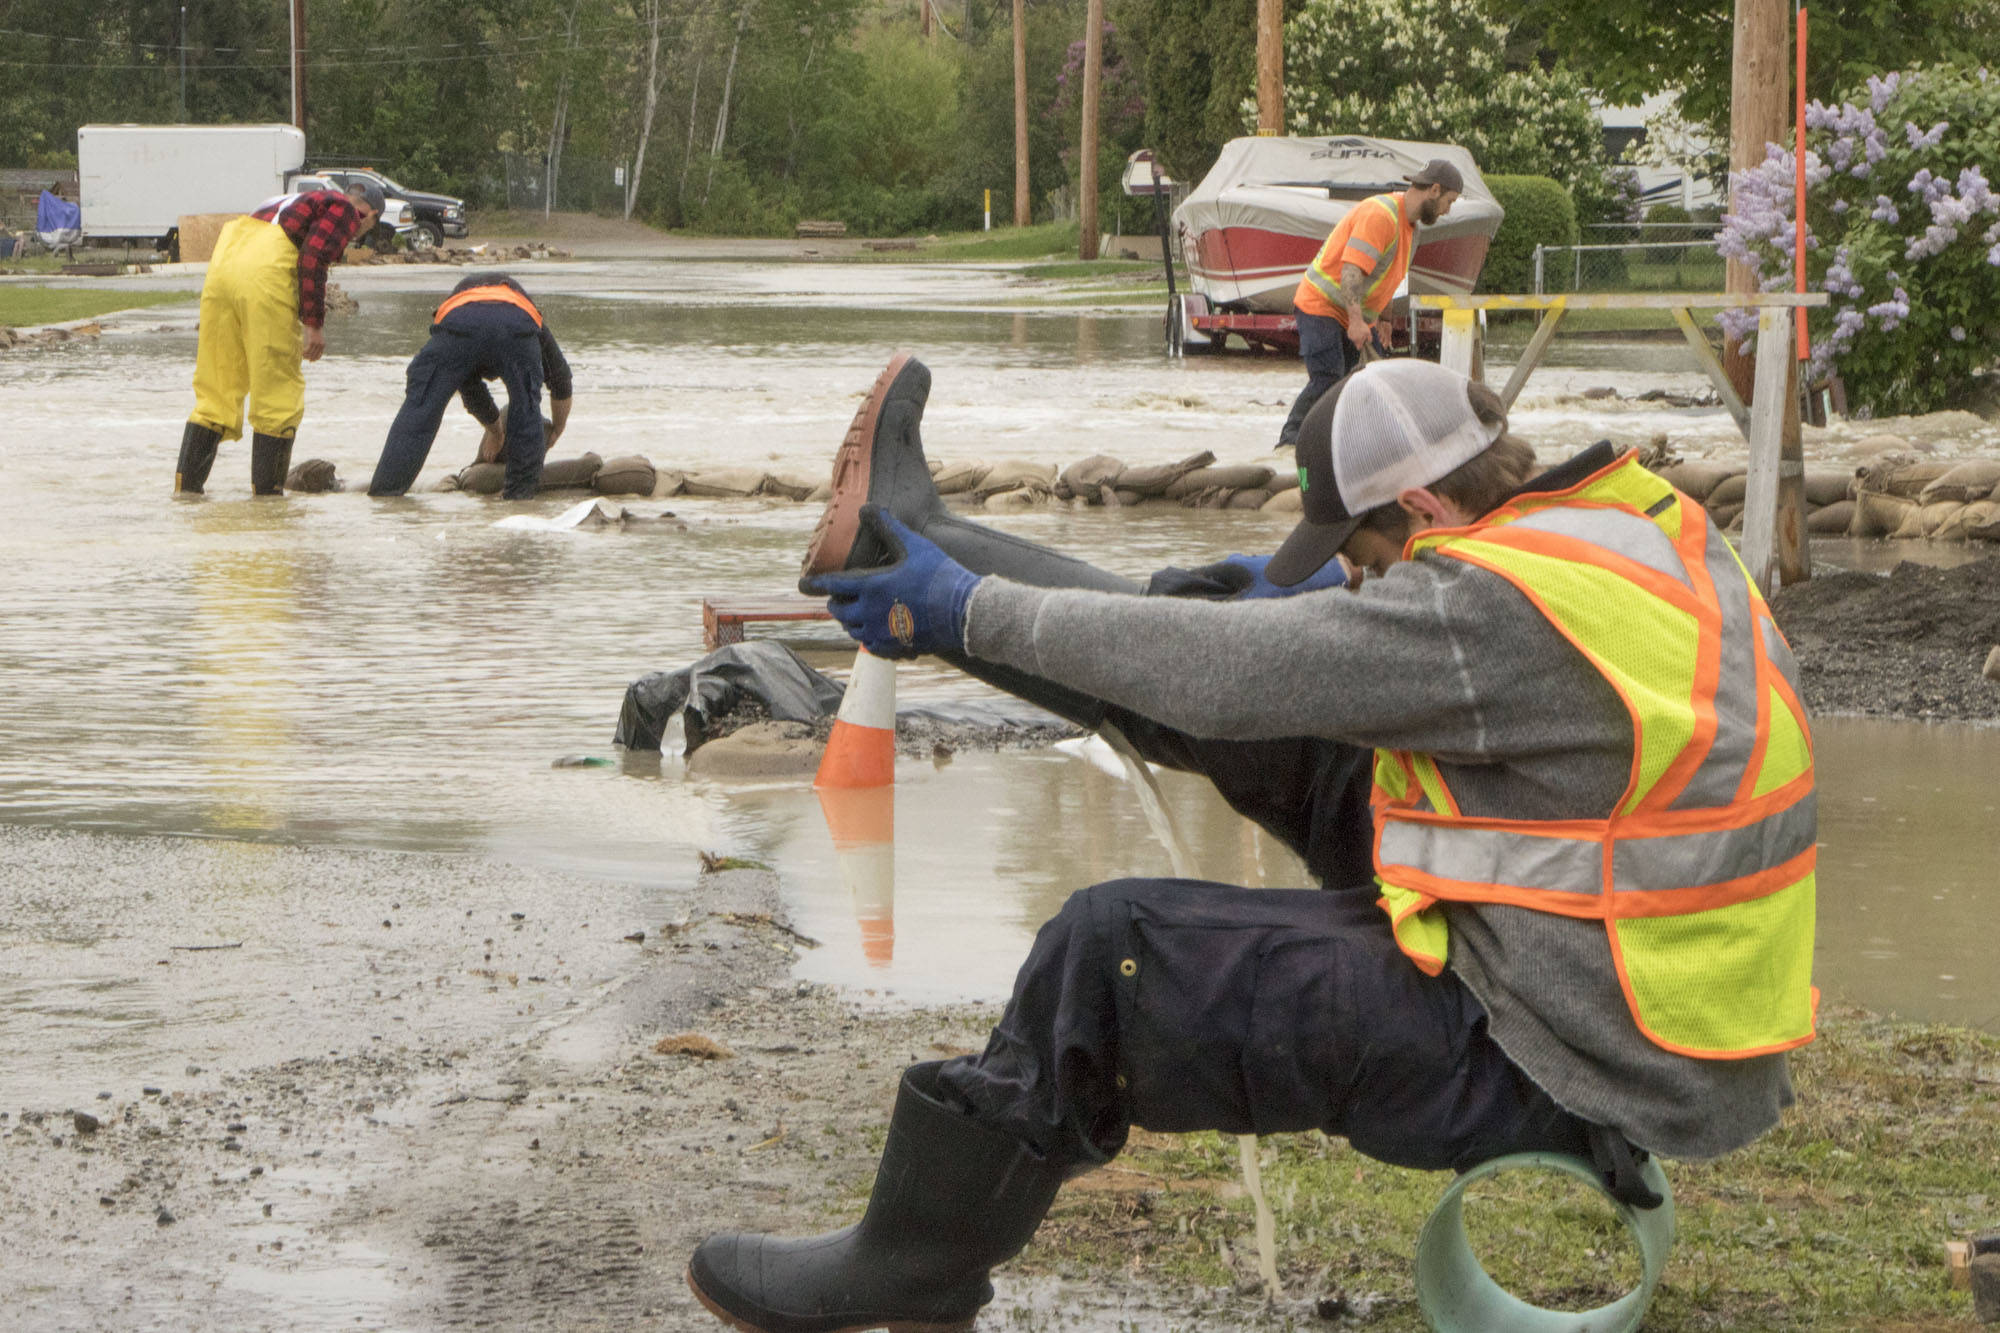 A man drains his boots before getting back to the sandbagging at 14th Avenue in Okanagan Falls. Even those with high boots on were not safe from the water, which reached a couple of feet in depth in places. Dustin Godfrey/Western News